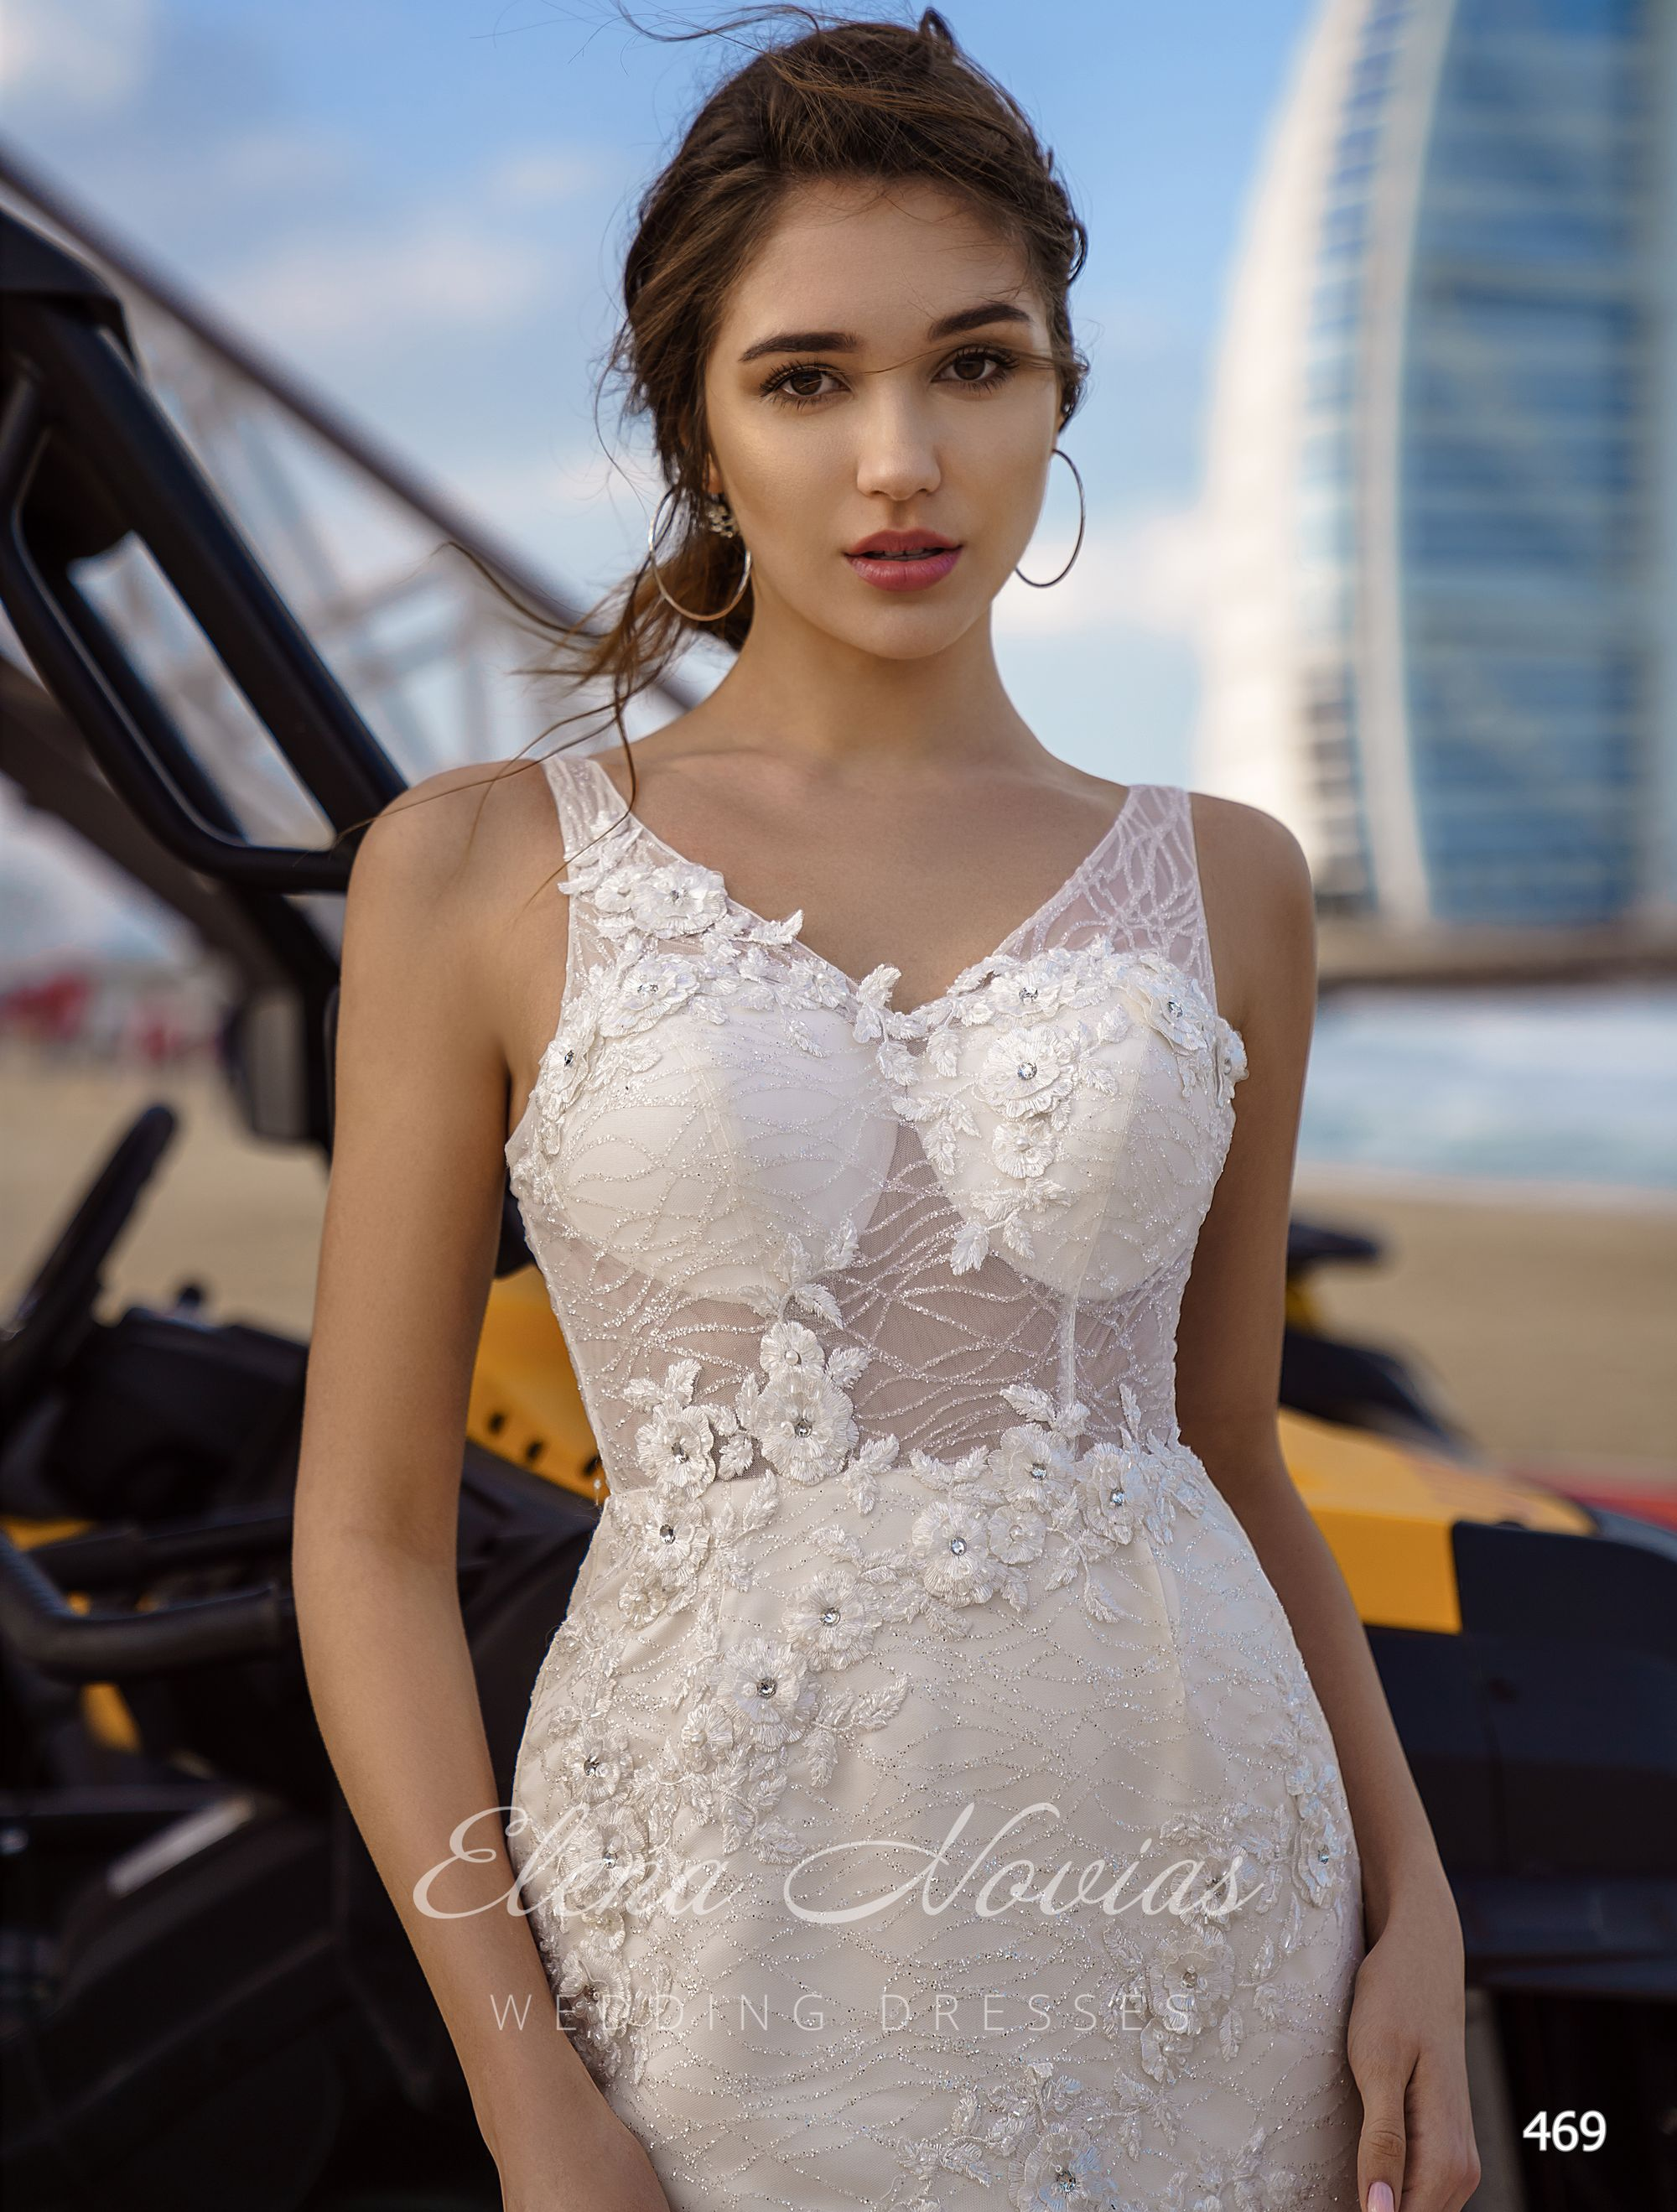 Wedding dresses 469